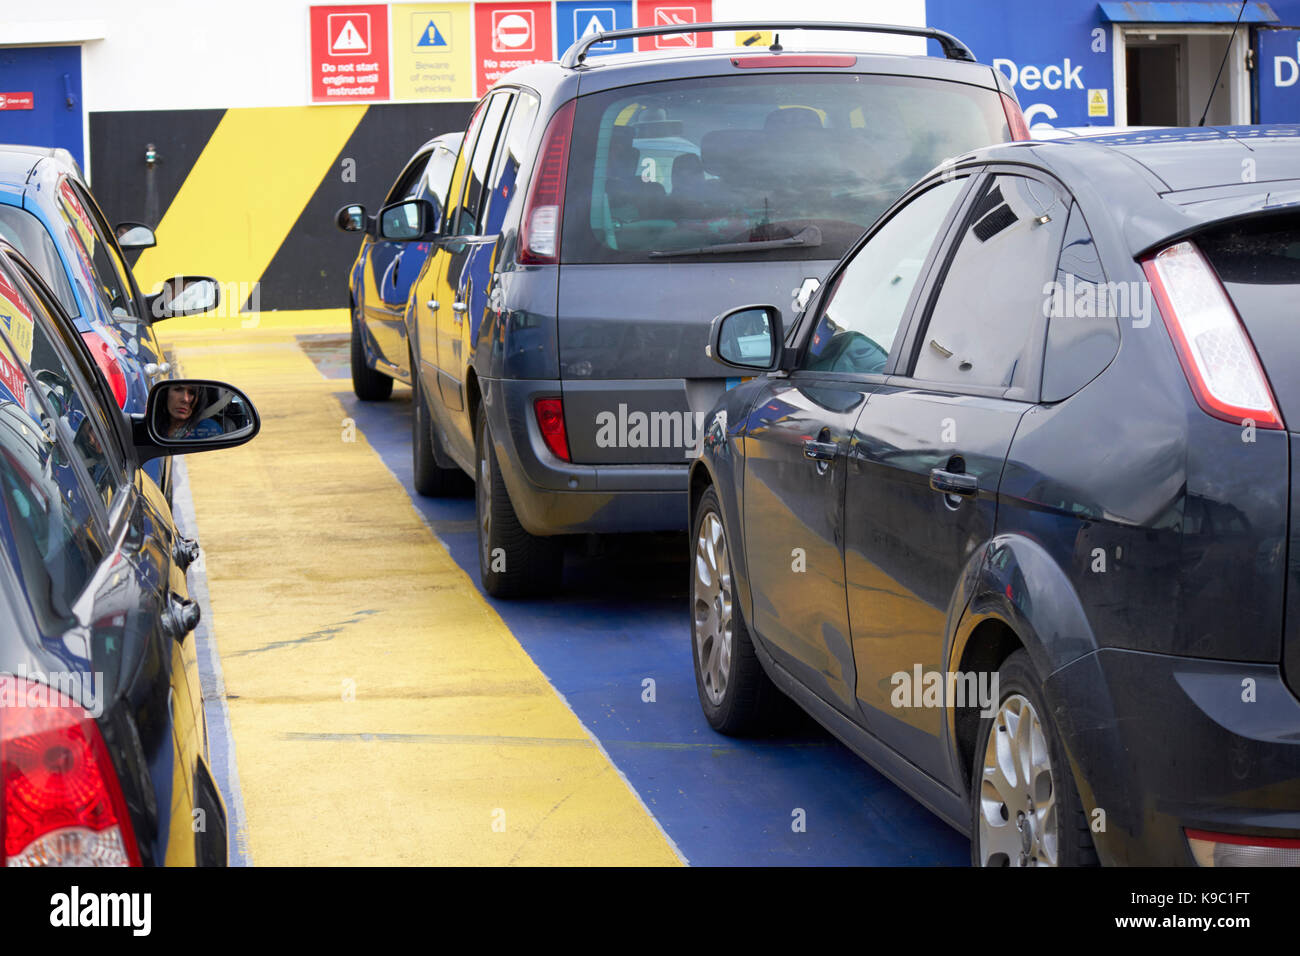 cars parked on upper open vehicle deck on top of stena line vehicle ferry on the irish sea - Stock Image